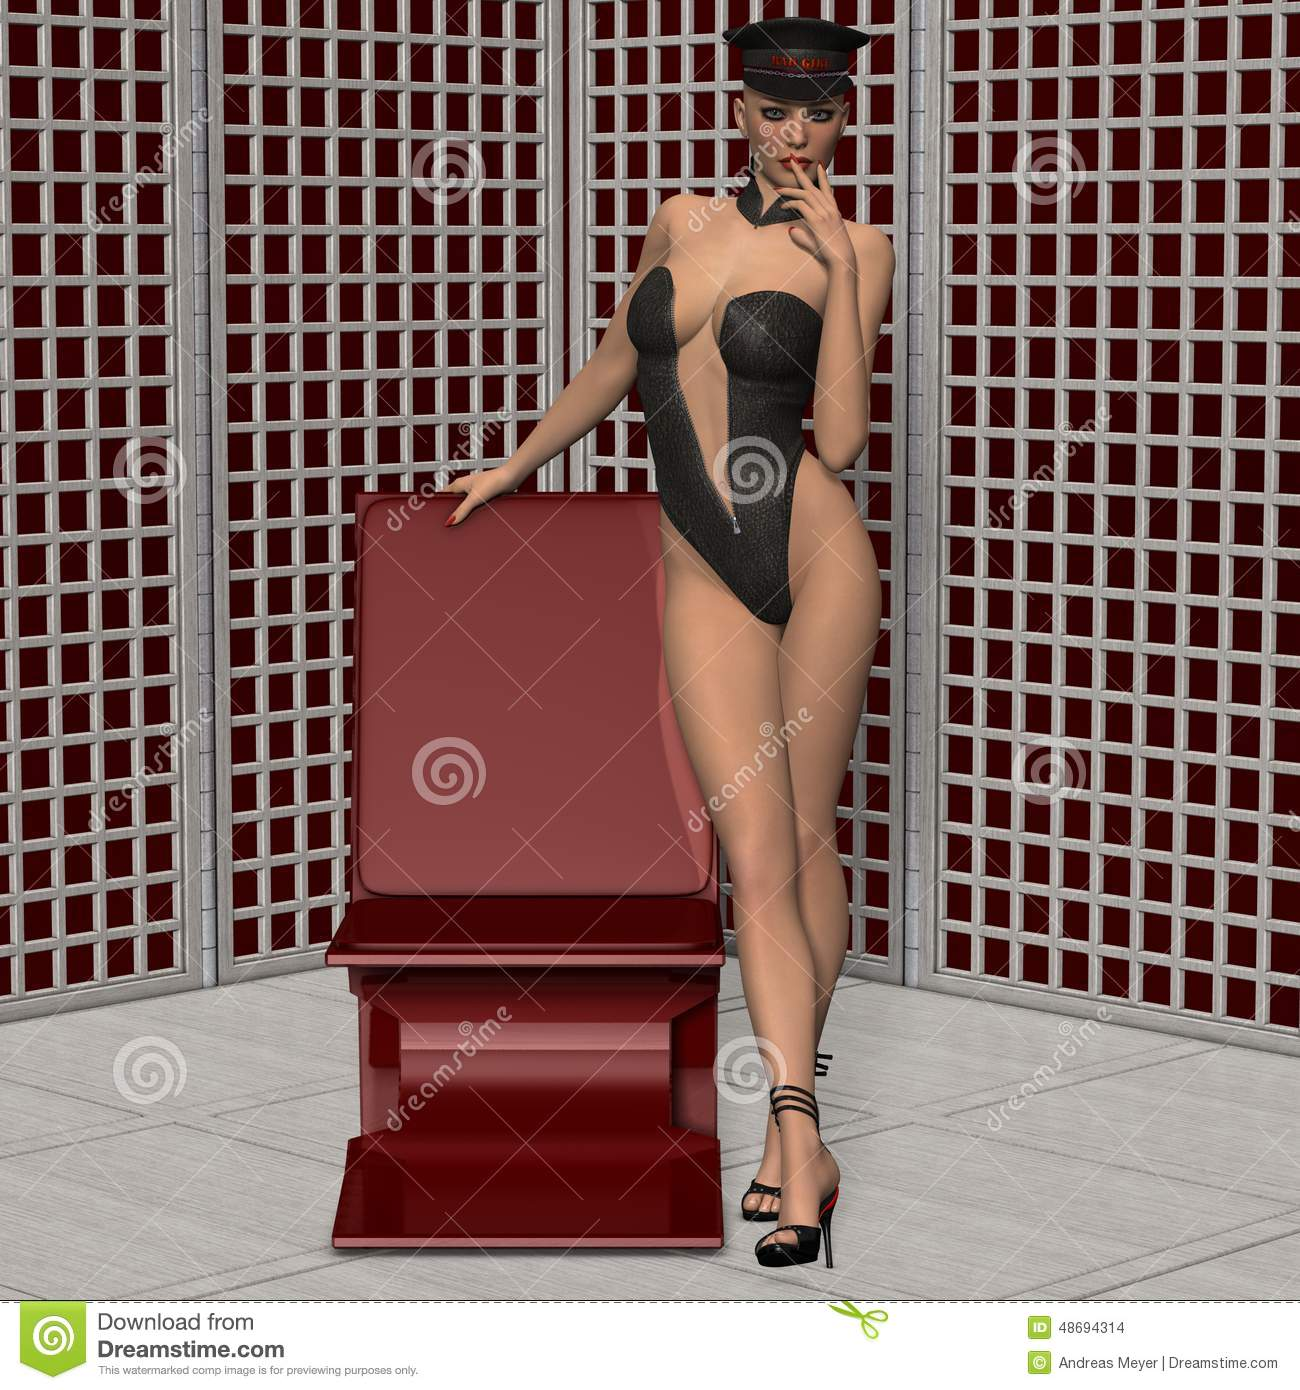 3D Sexy Game attractive girl in fetish wear stock illustration